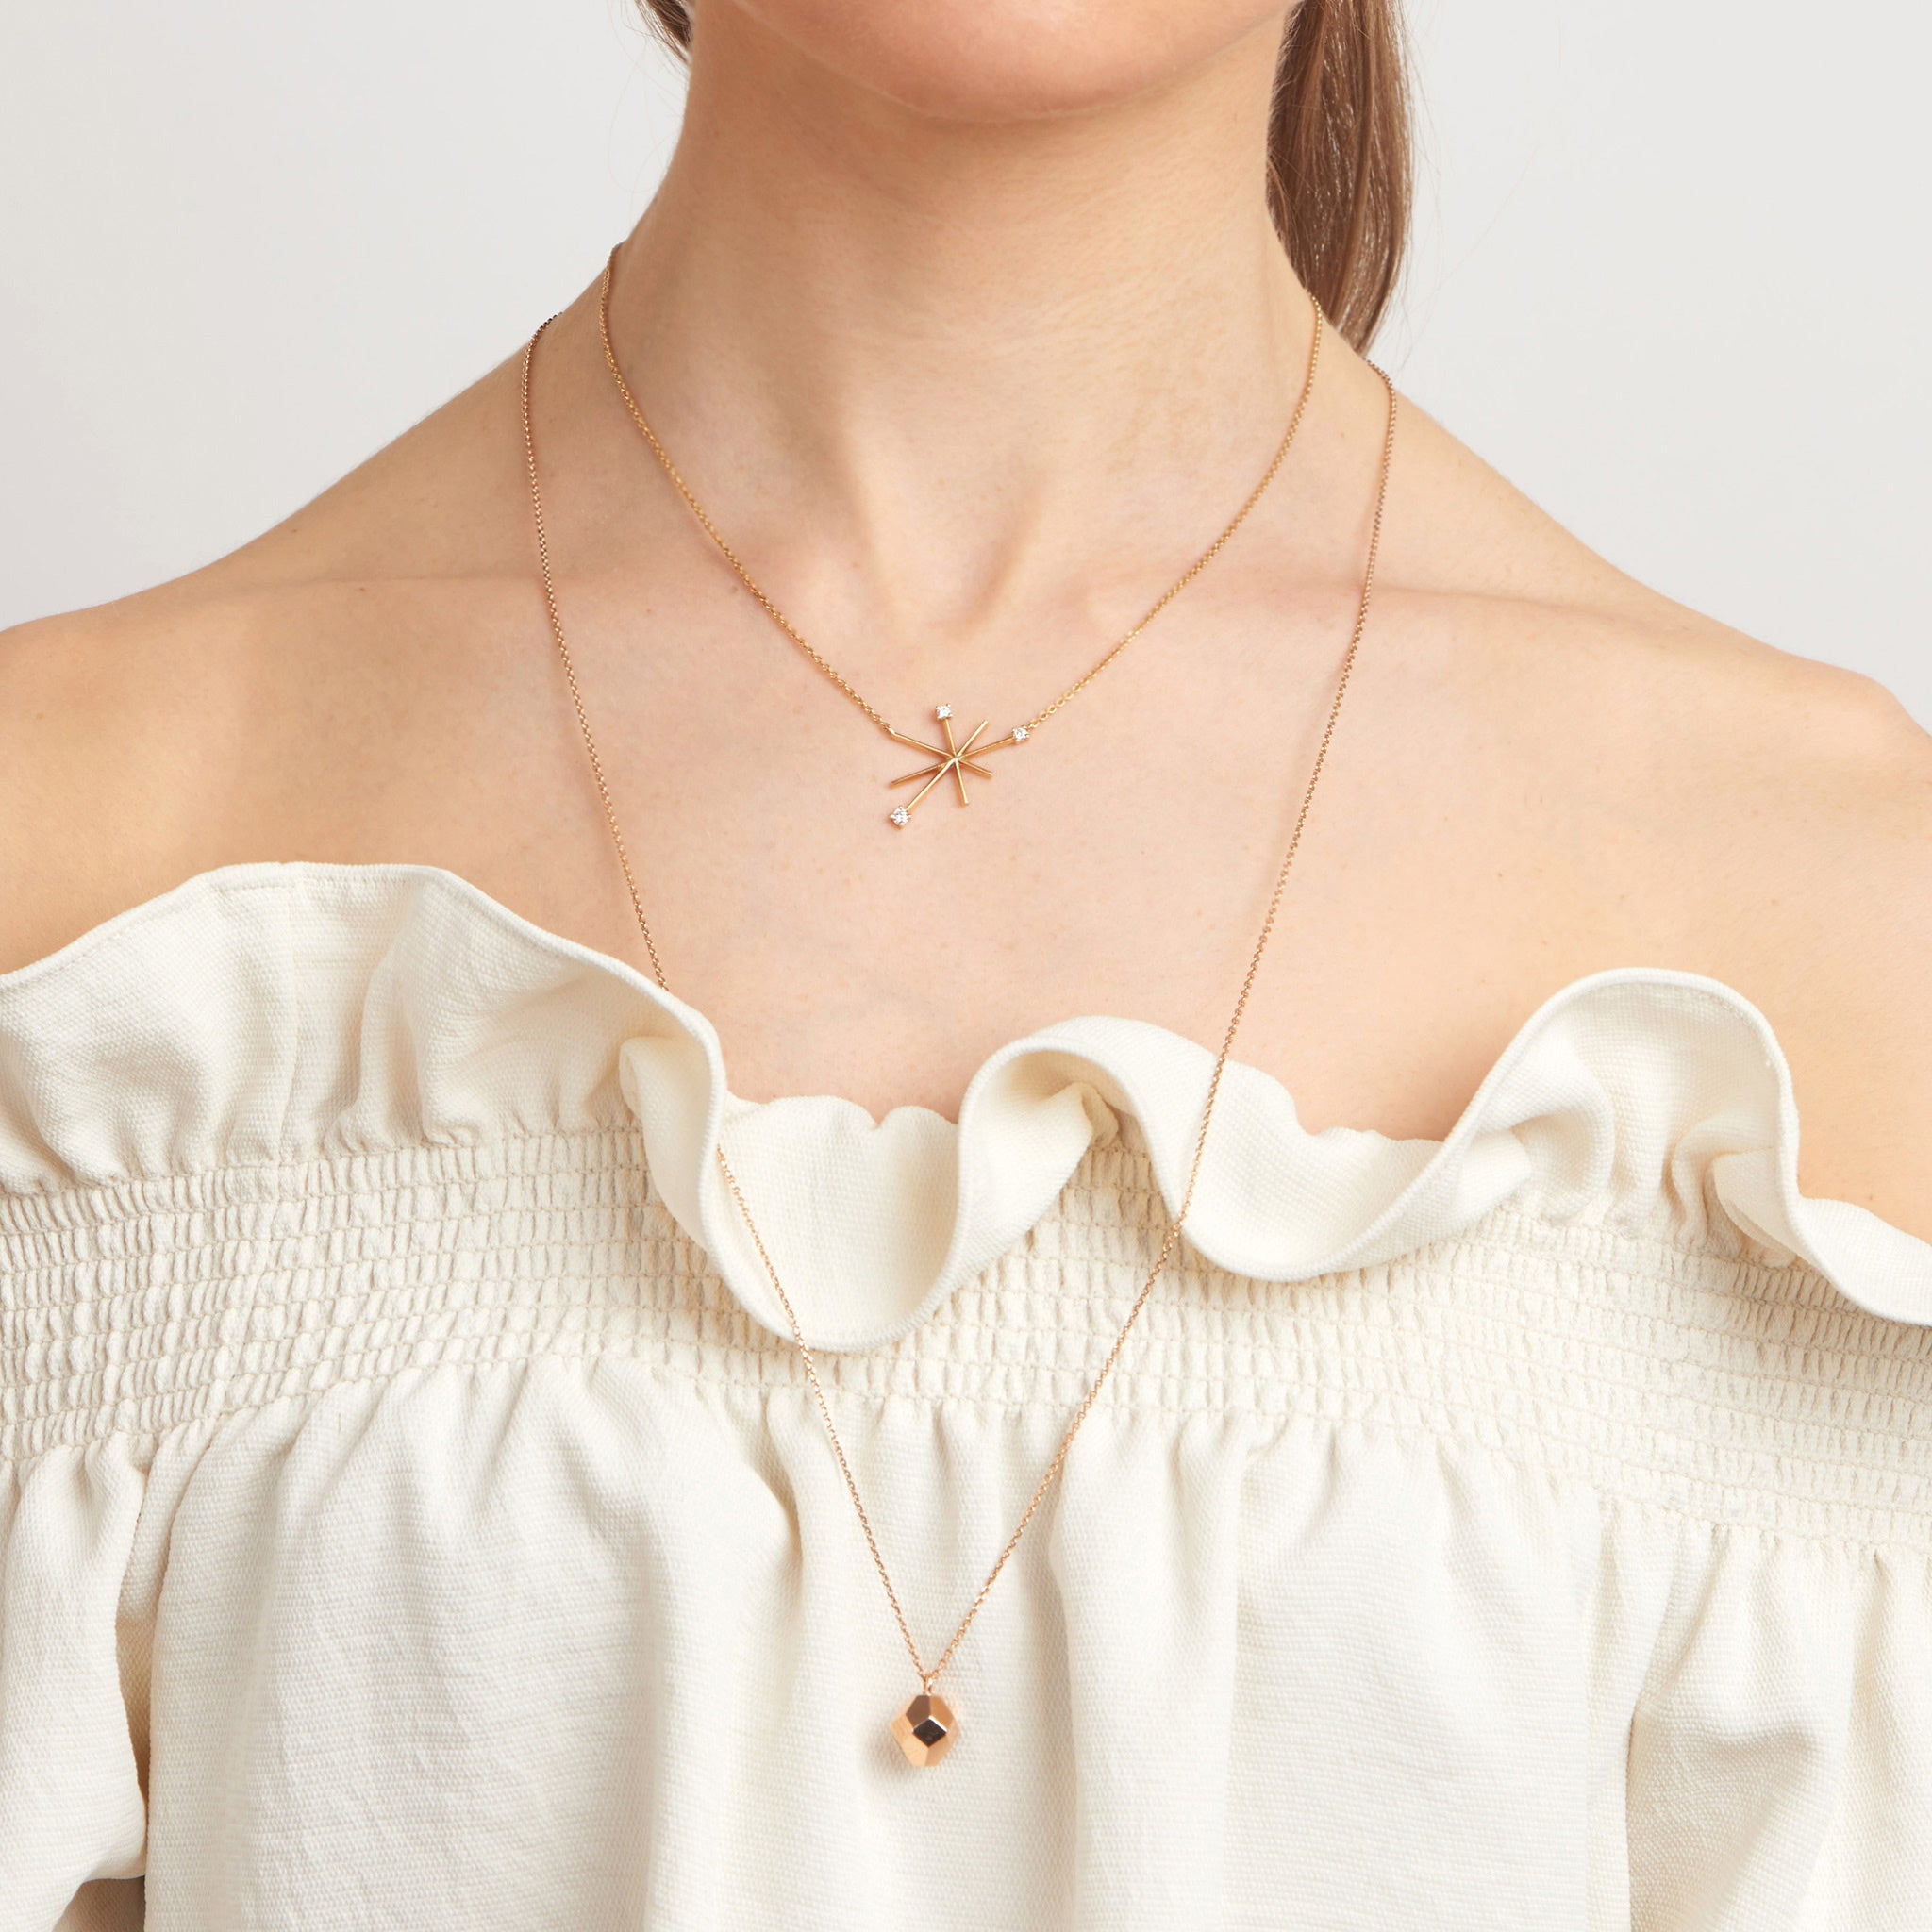 Mimi-So-Piece-Star-Necklace-Small.jpg